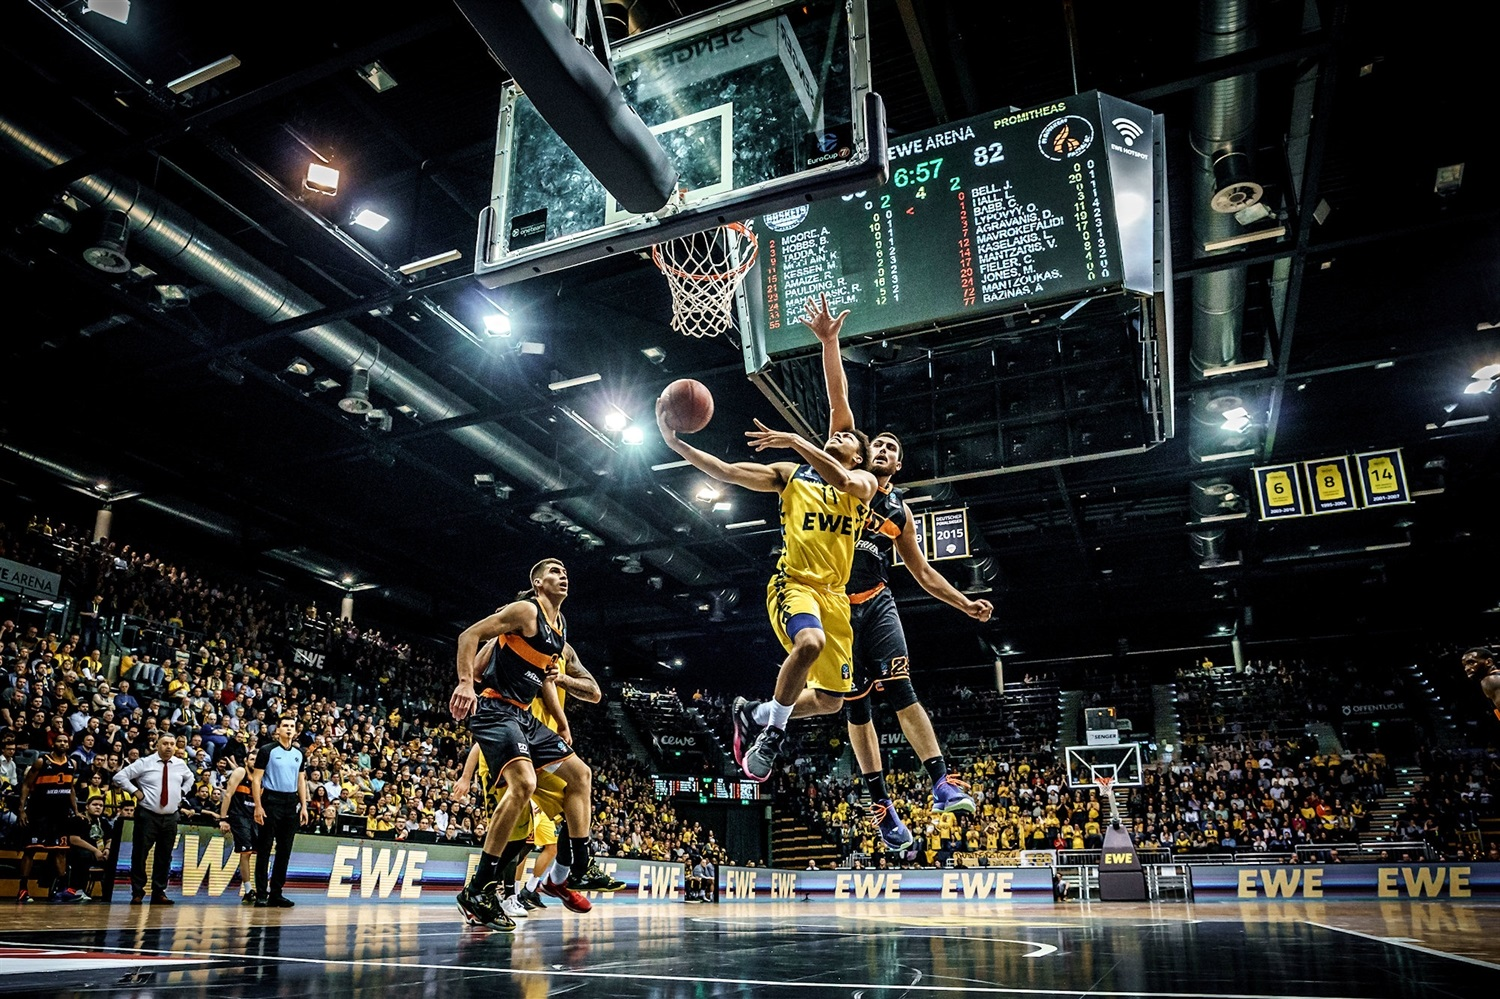 Kevin McClain - EWE Baskets Oldenburg (photo Ulf Duda - fotoduda.de) - EC19